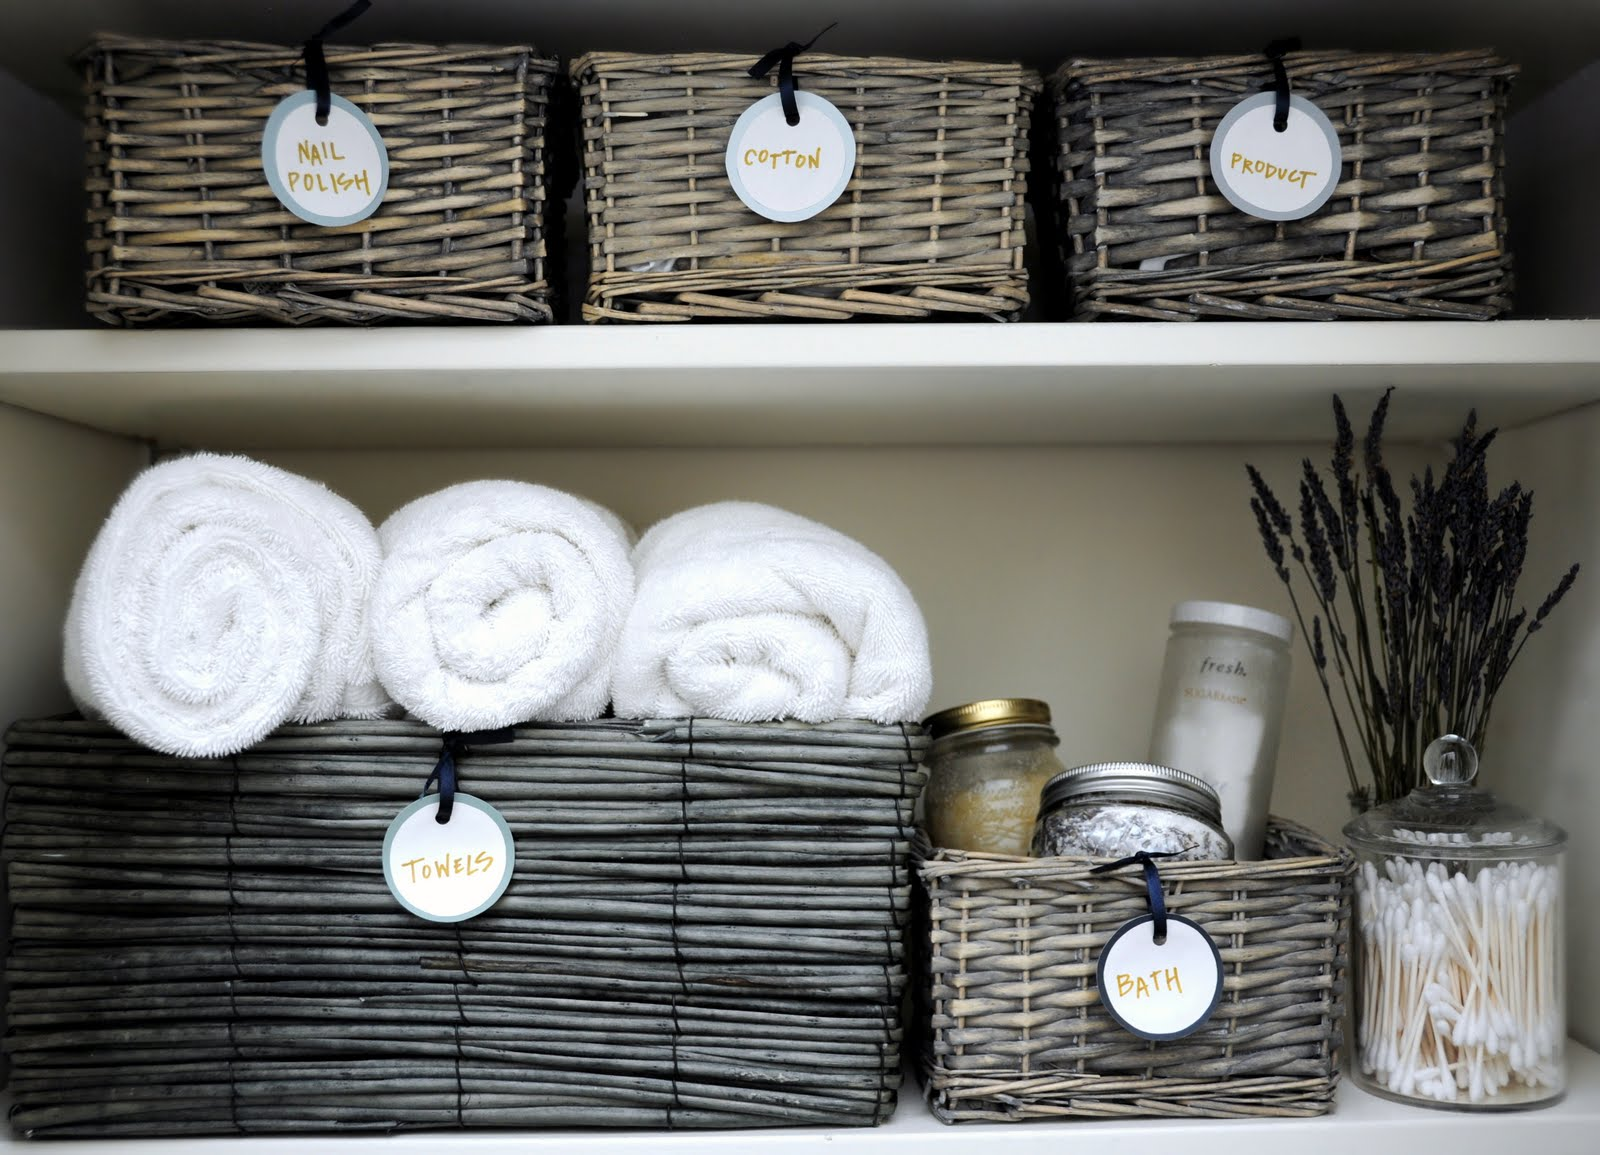 Nice How To Organize Linen Closet: Declutter, Sort By Category, And Store Things  In